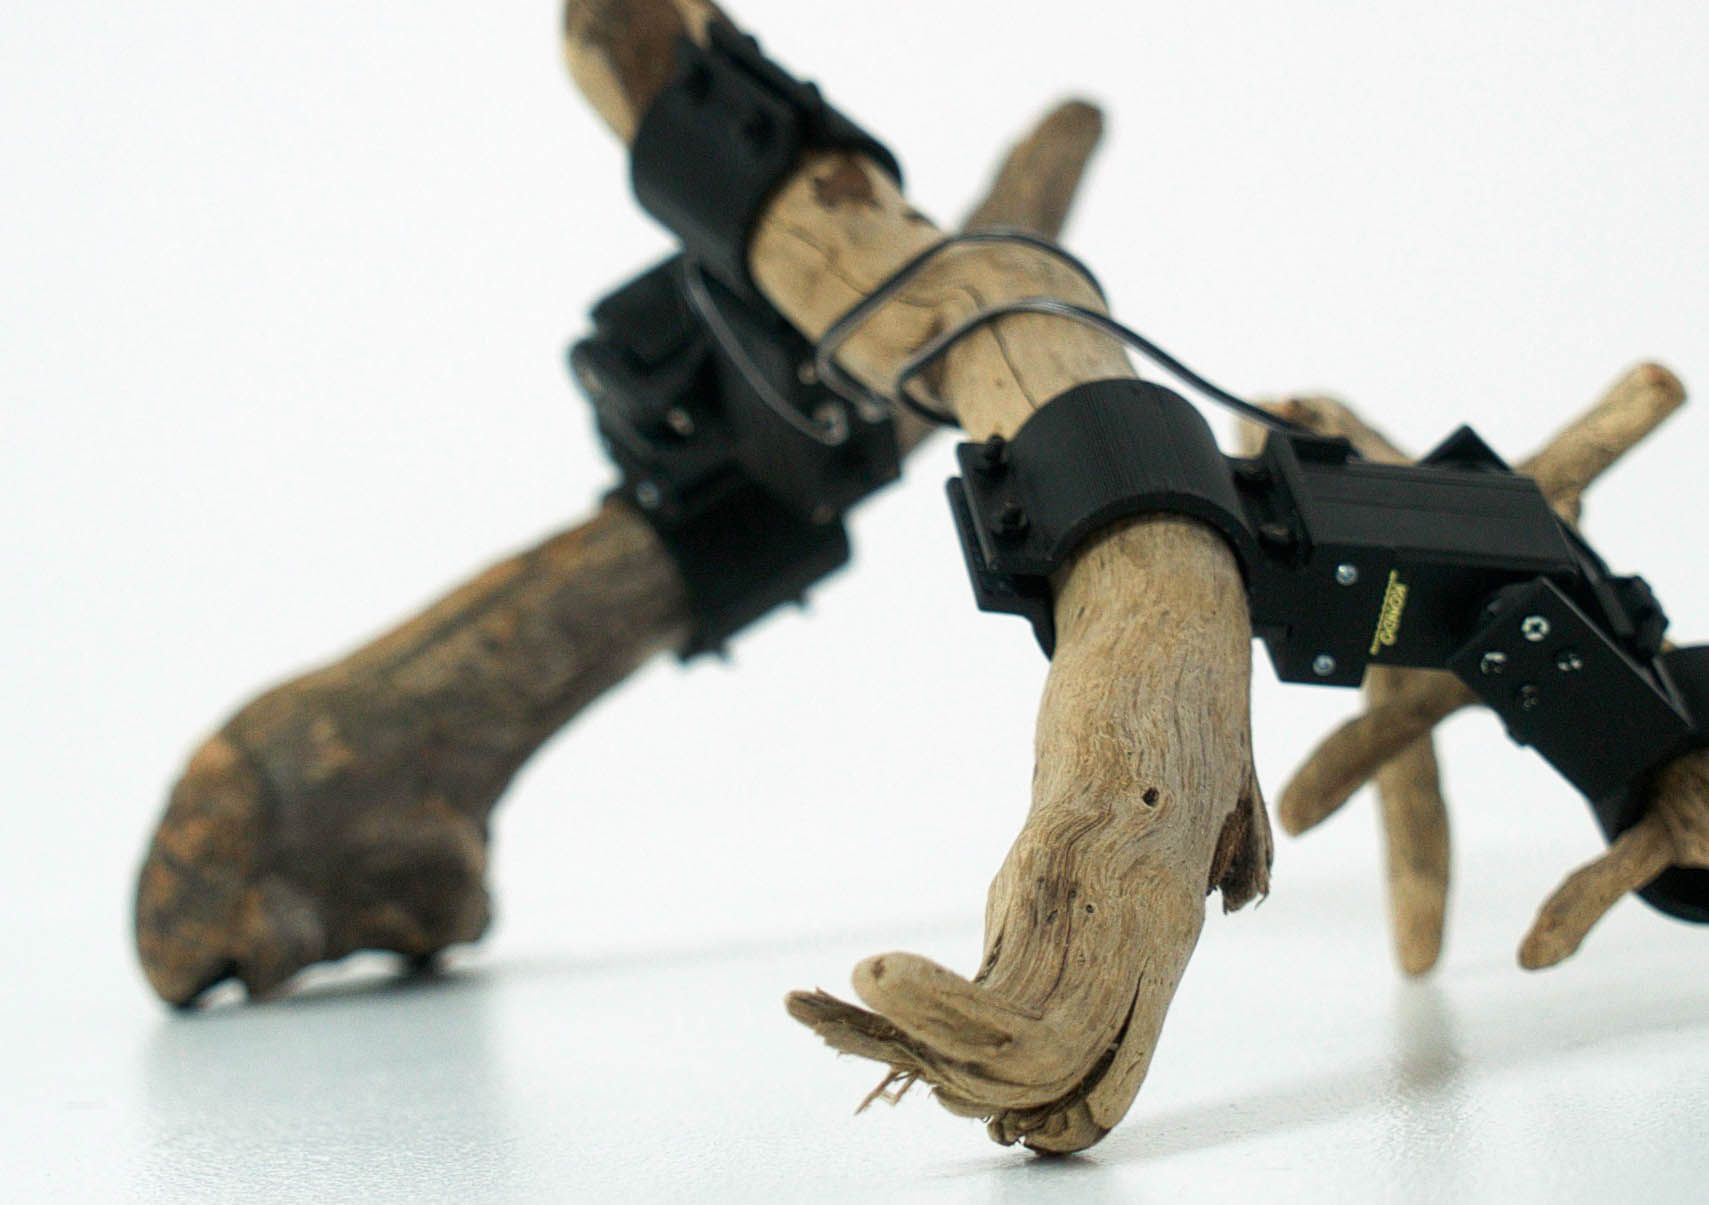 Robot Made Out of Branches Uses Deep Learning to Walk